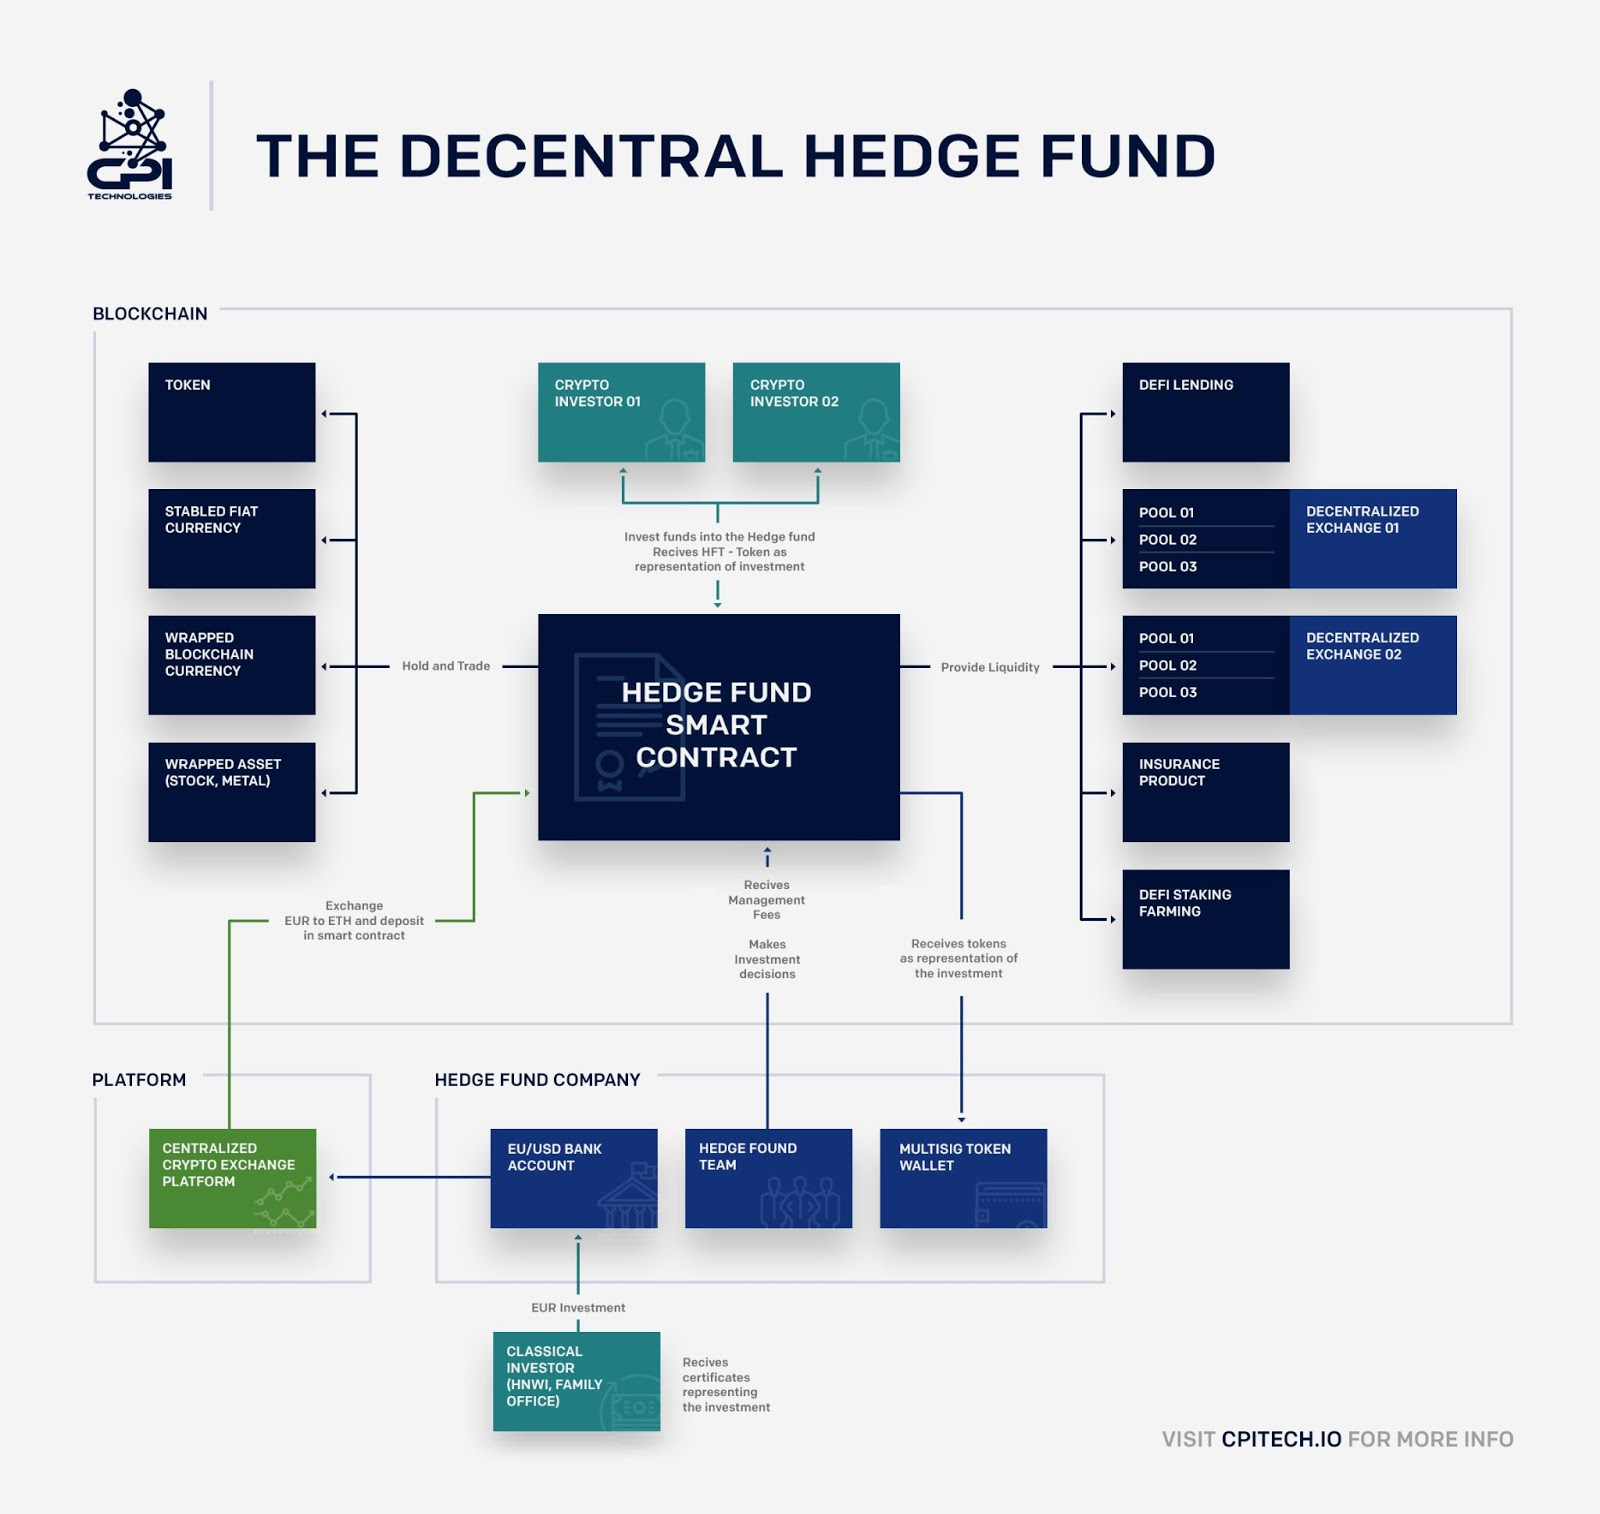 The decentral hedge fund